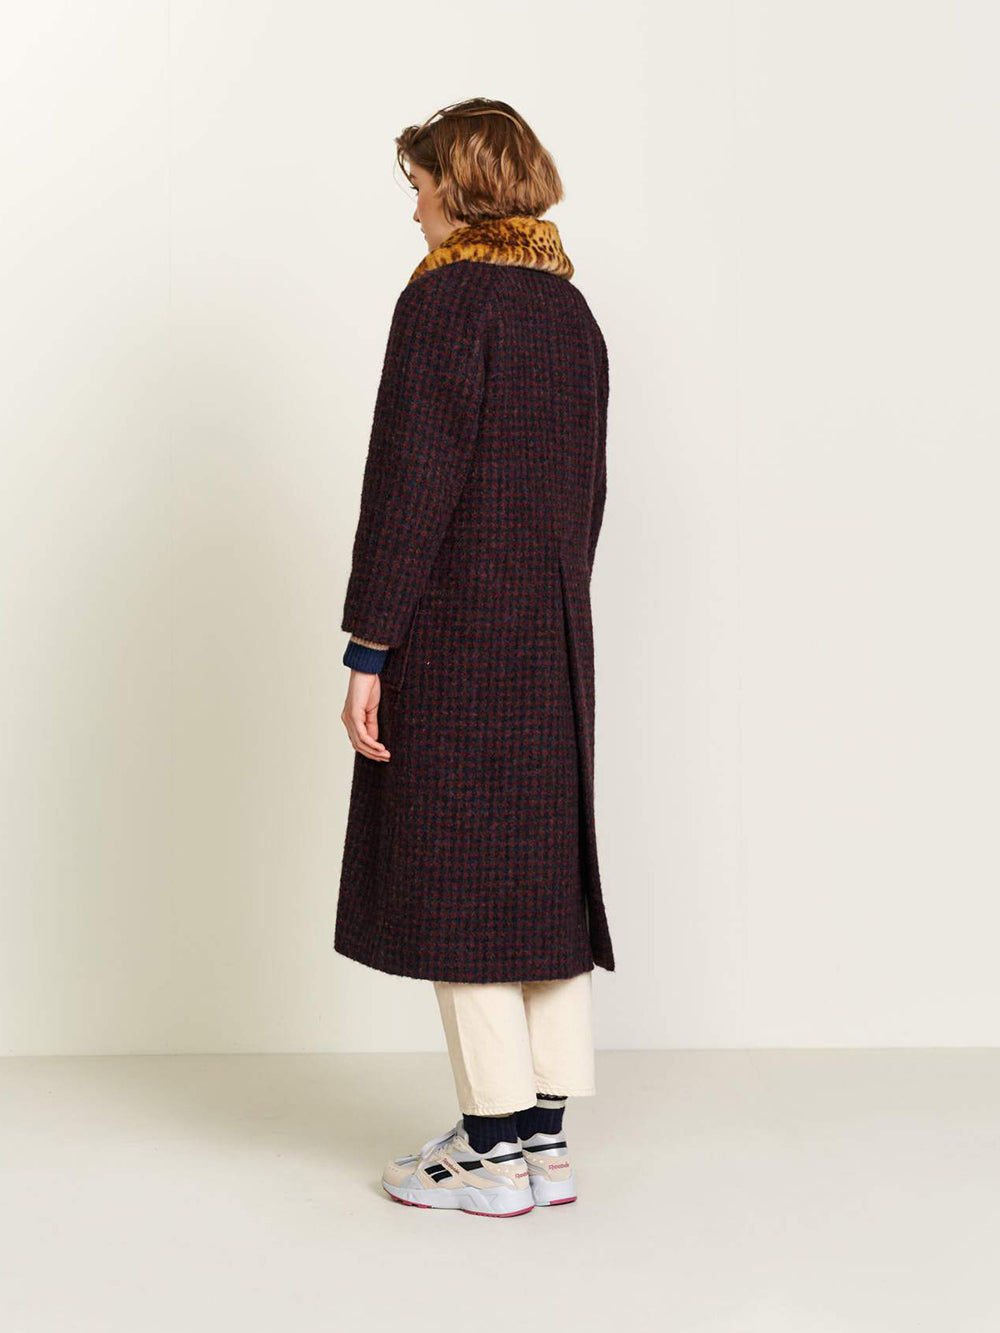 bellerose haider coat in check a